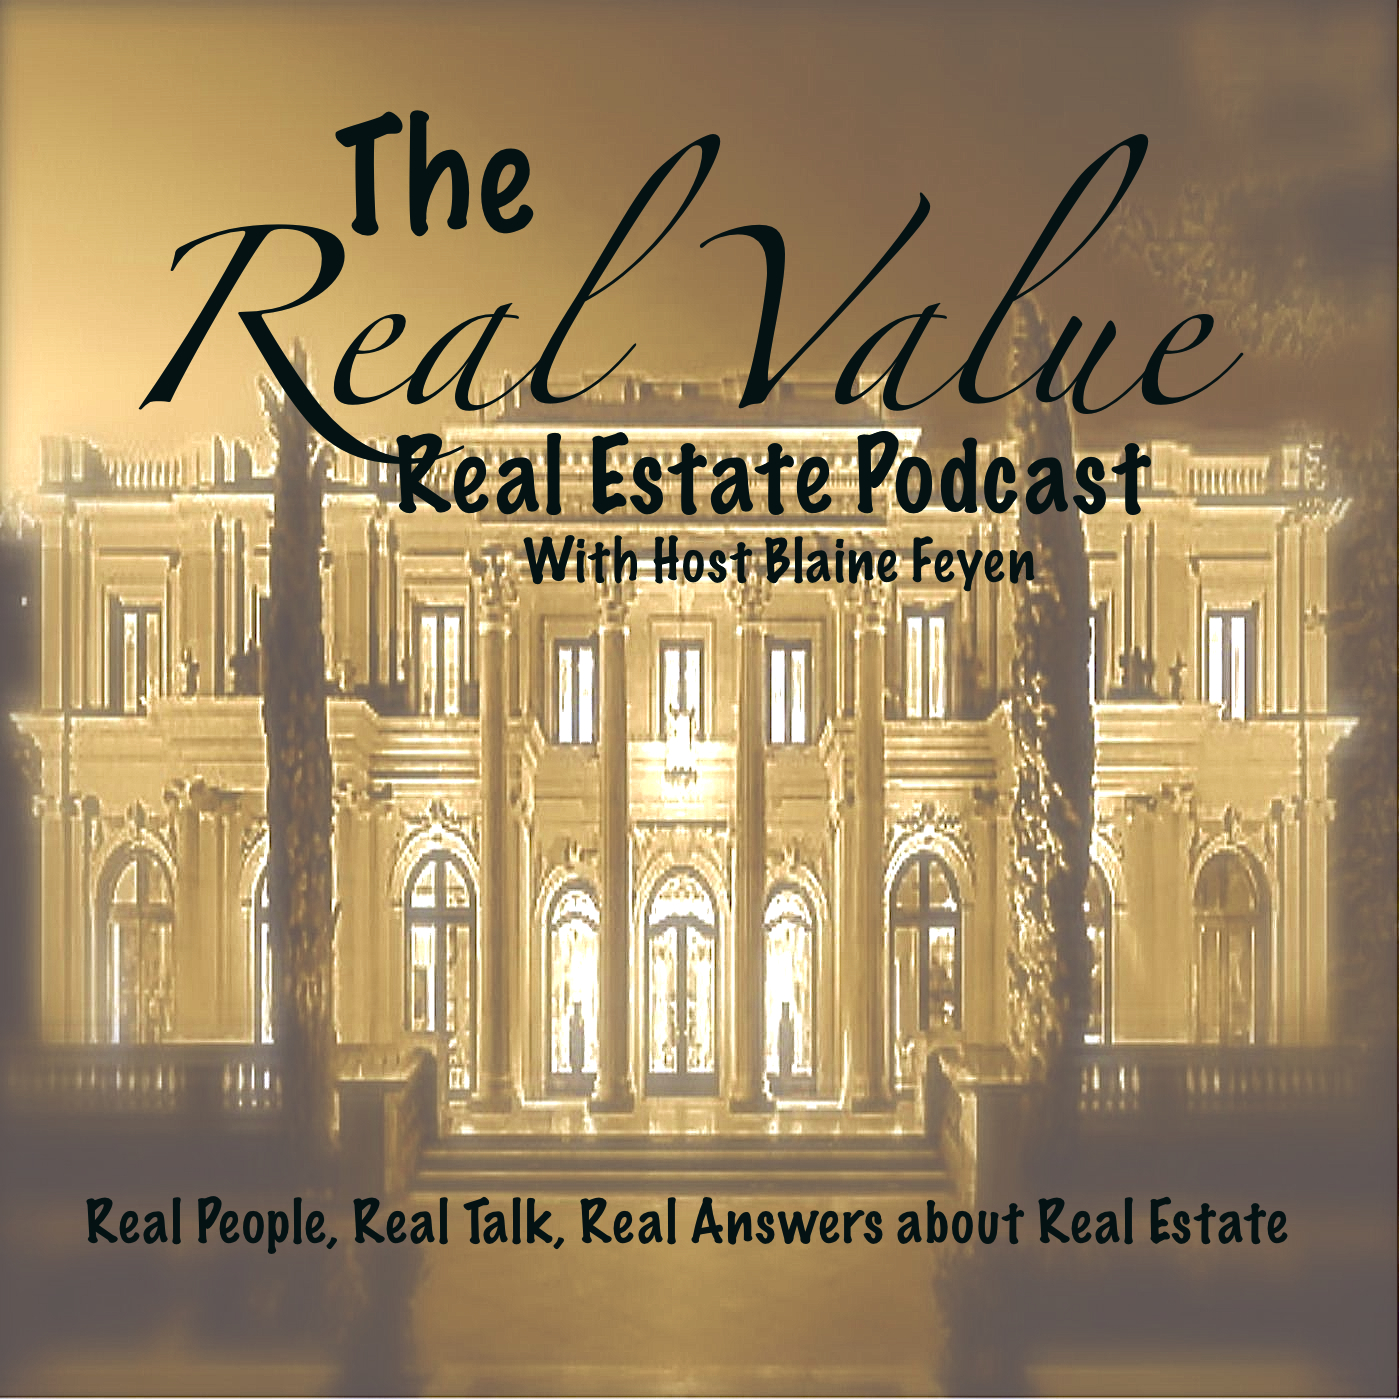 Real estate and appraisal podcast